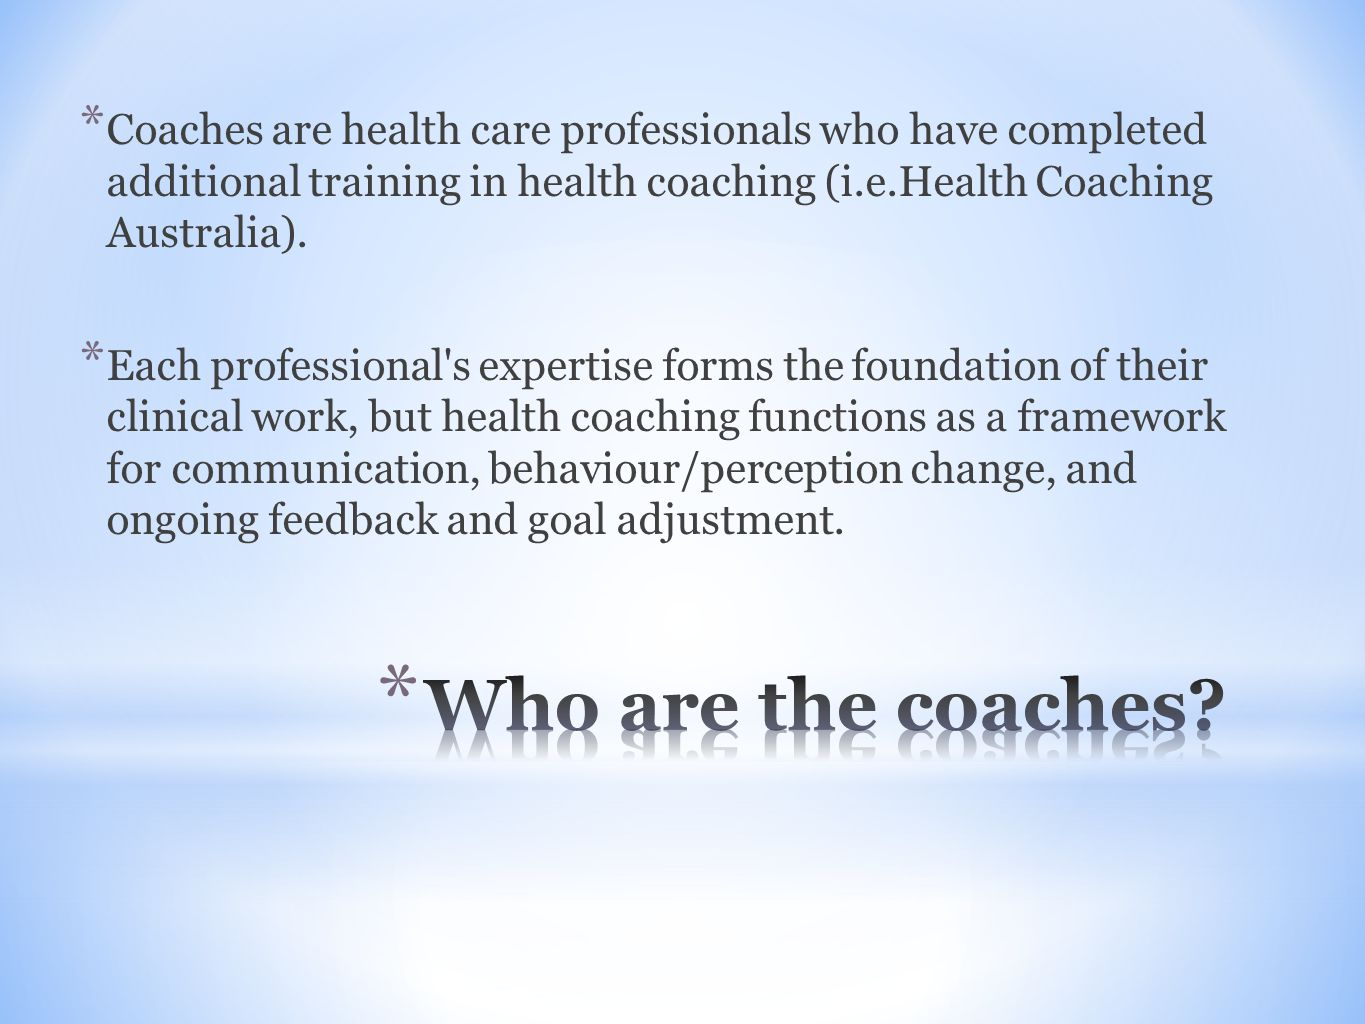 * Coaches are health care professionals who have completed additional training in health coaching (i.e.Health Coaching Australia).